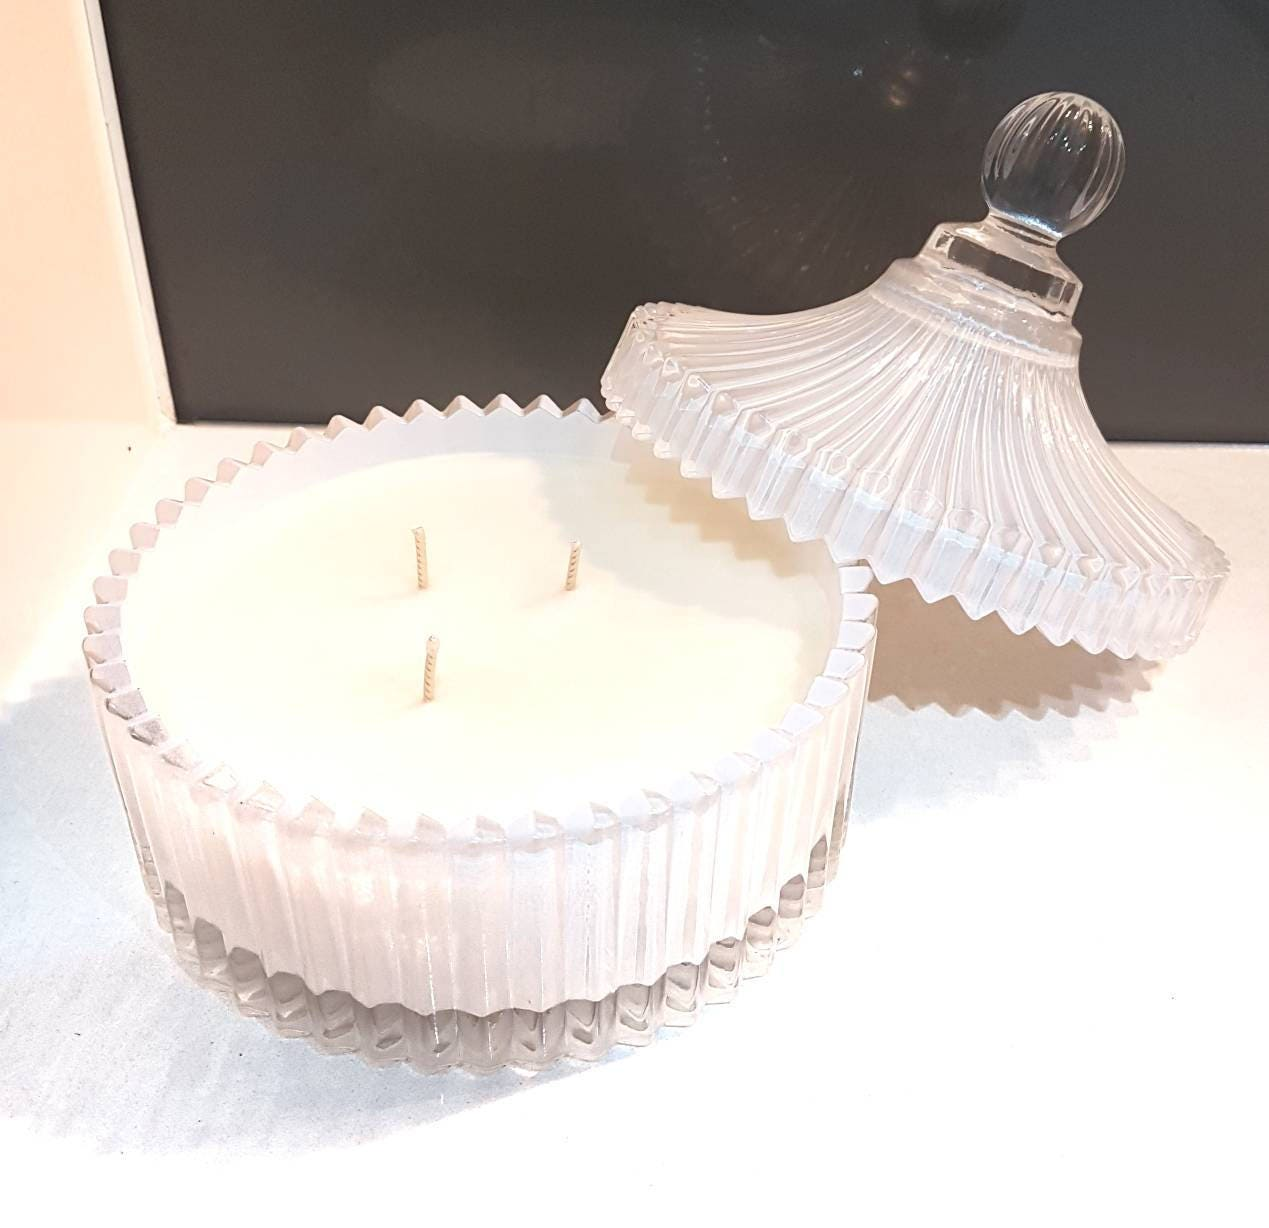 White Trinket Candle / Carousel candle / Gift for her / Last Minute ...